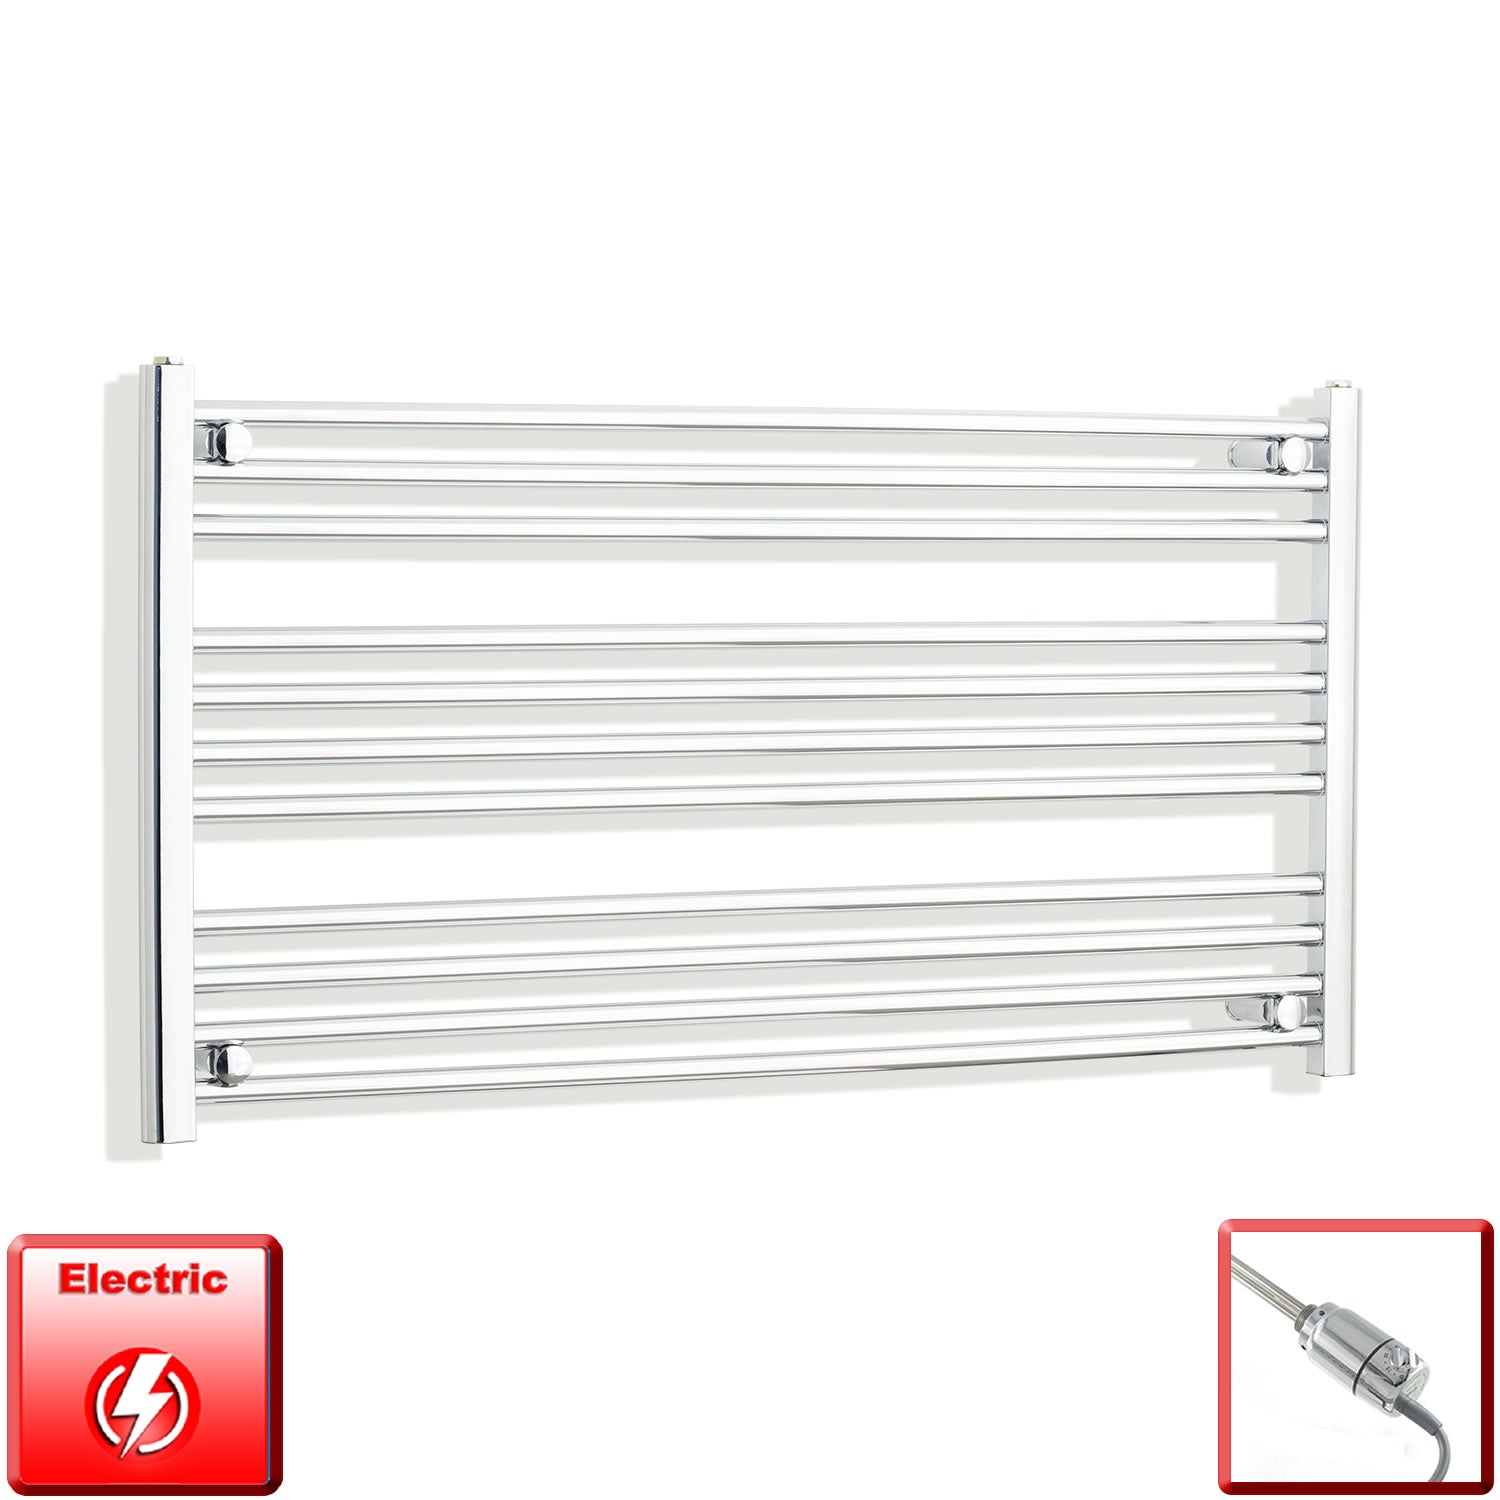 1000mm Wide 600mm High Flat Chrome Pre-Filled Electric Heated Towel Rail Radiator HTR,GT Thermostatic